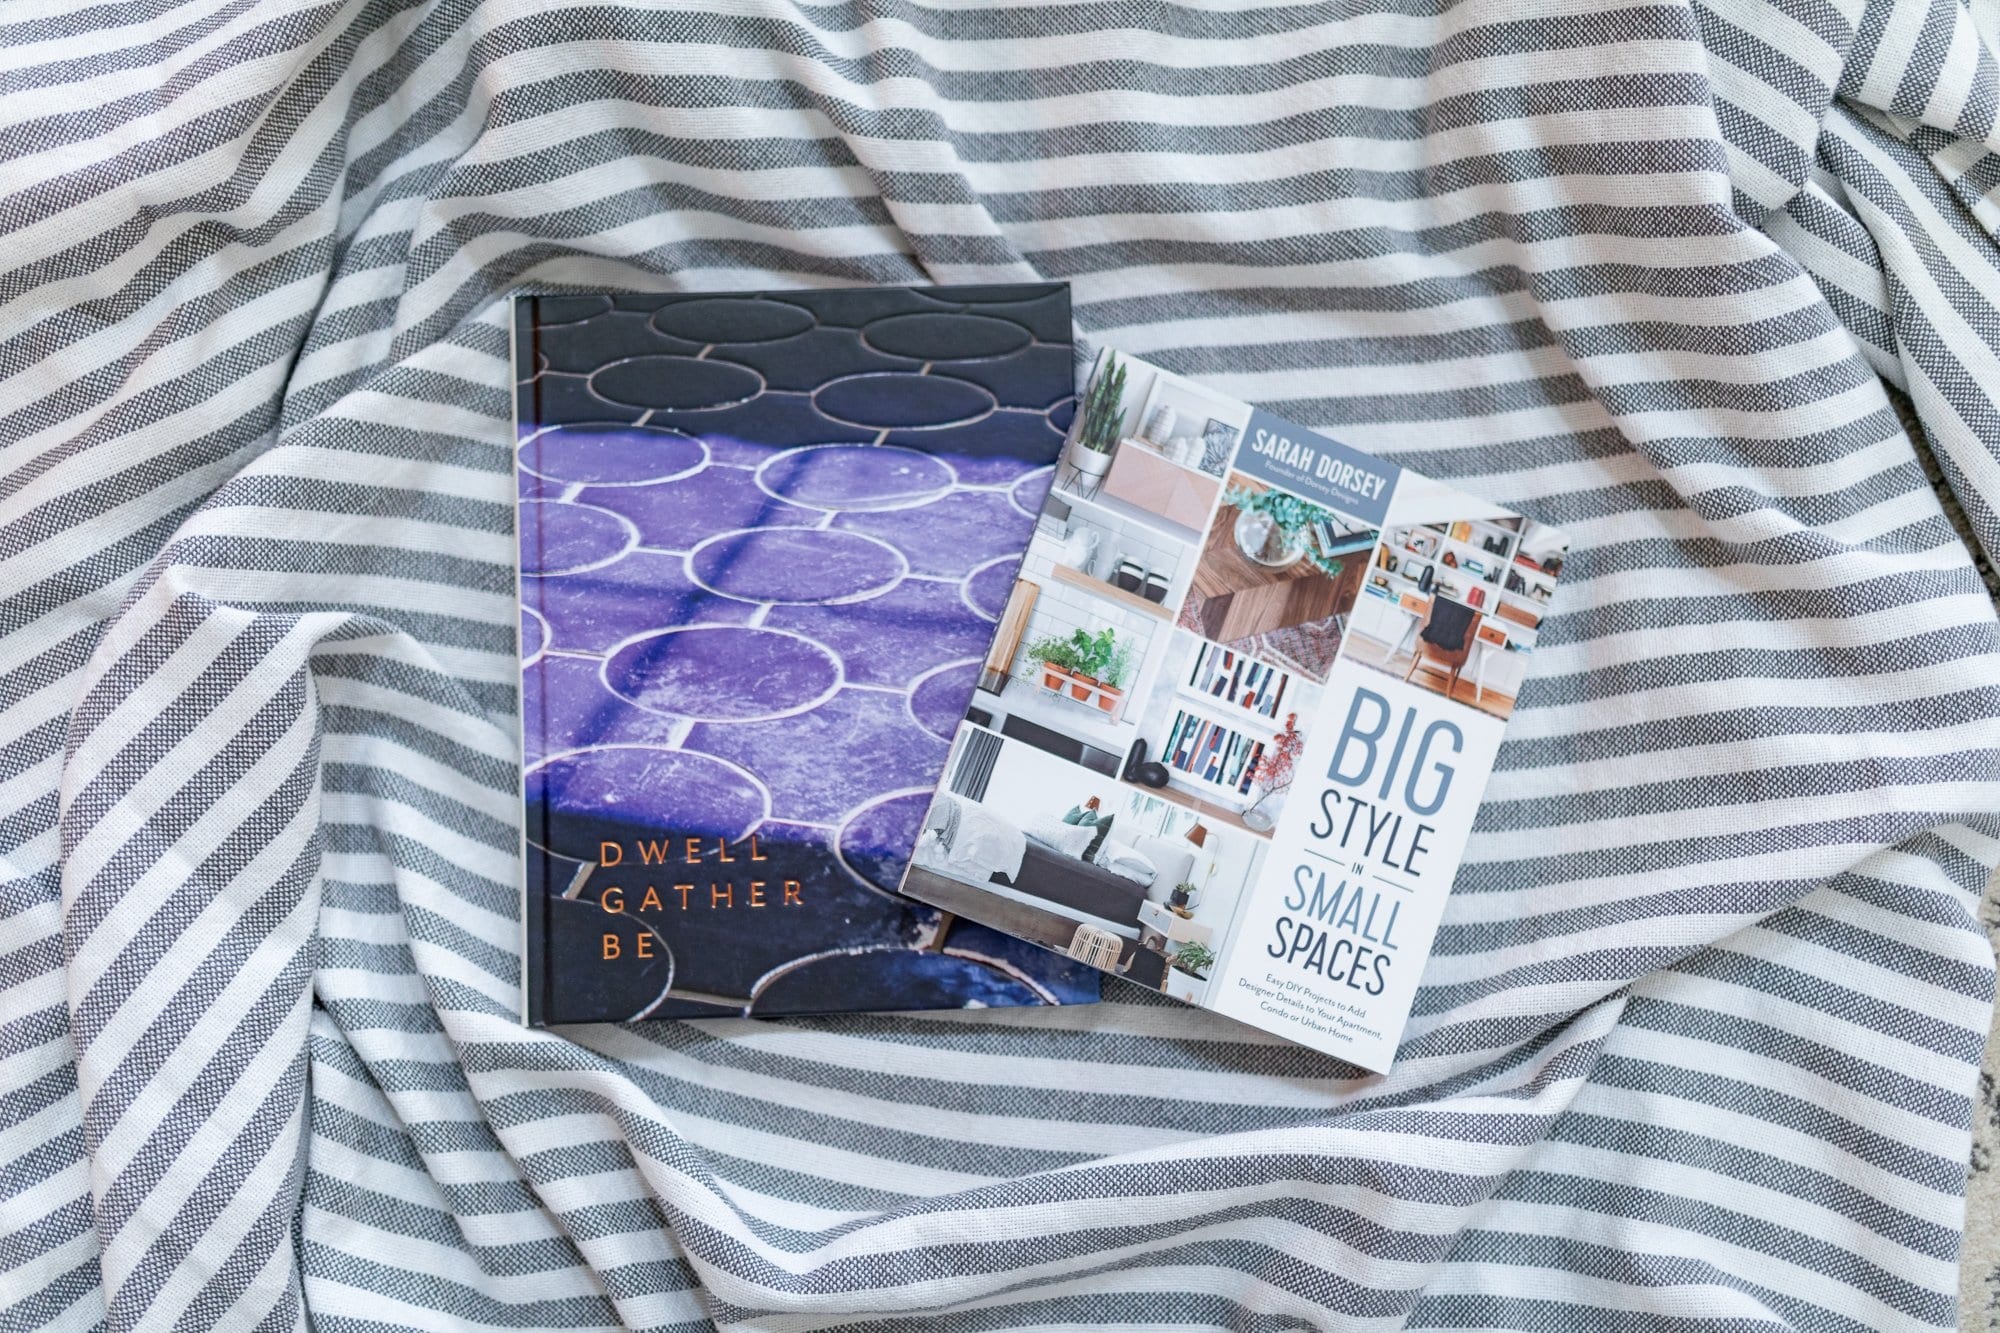 Such good picks! —  home decor books to cozy up with | Never Skip Brunch by Cara Newhart | #decor #diy #home #neverskipbrunch